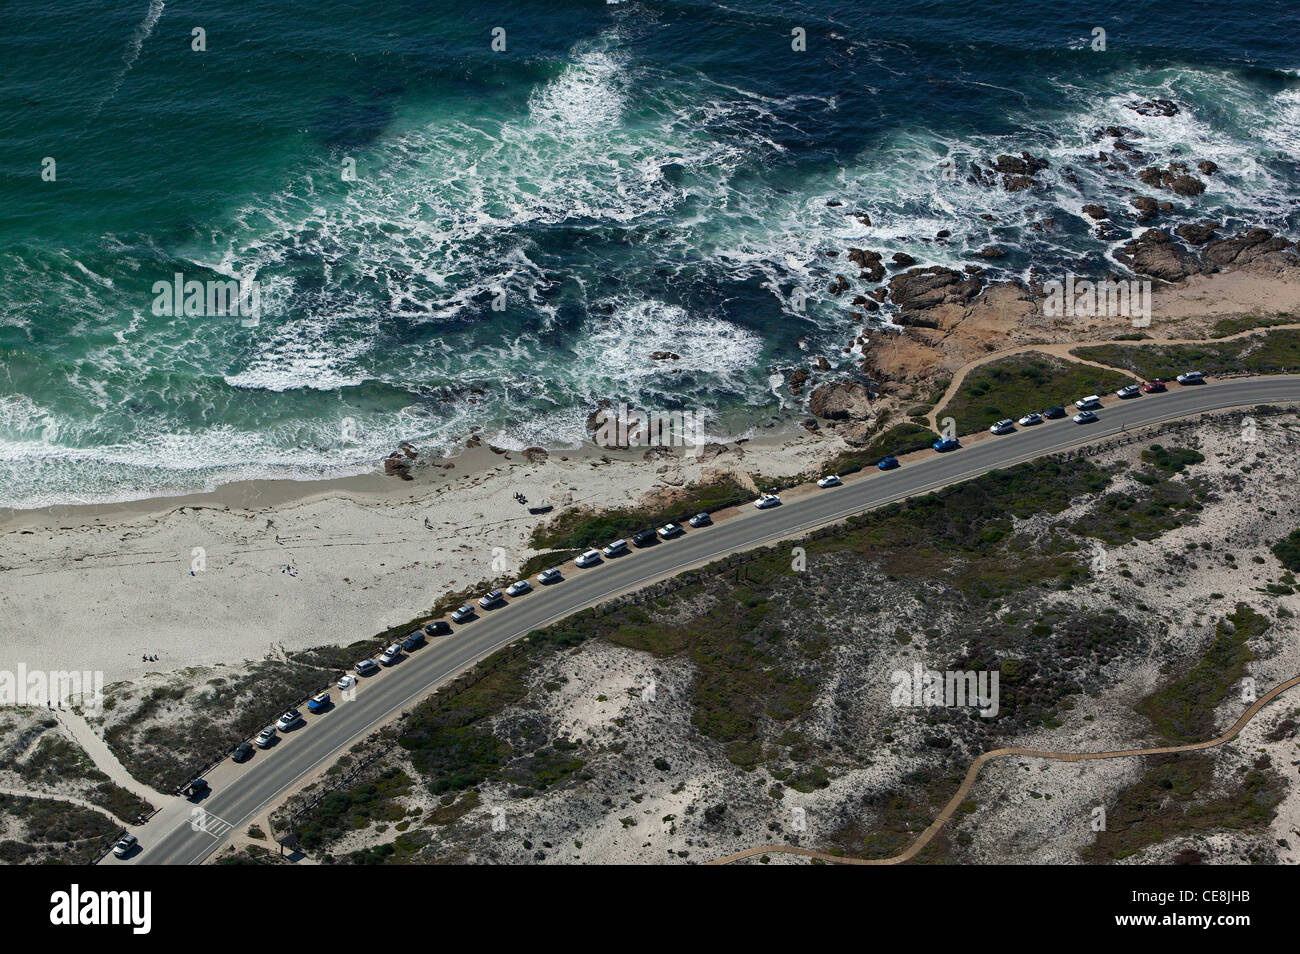 aerial photograph cars parked at popular beach Monterey, California - Stock Image